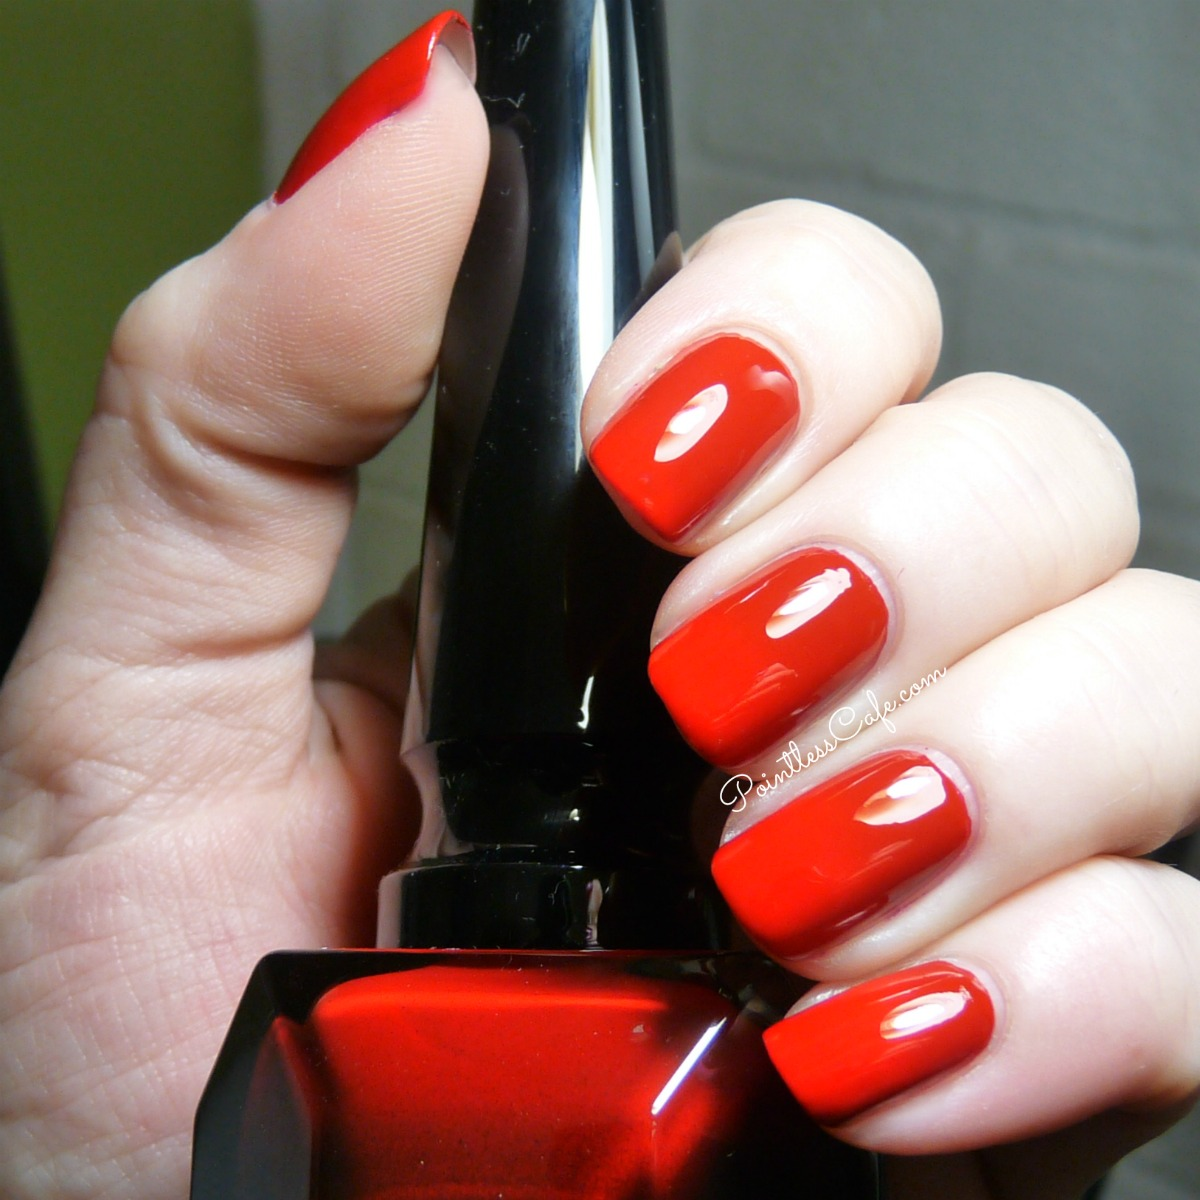 Christian Louboutin Rouge Louboutin - Swatches, Review and ...